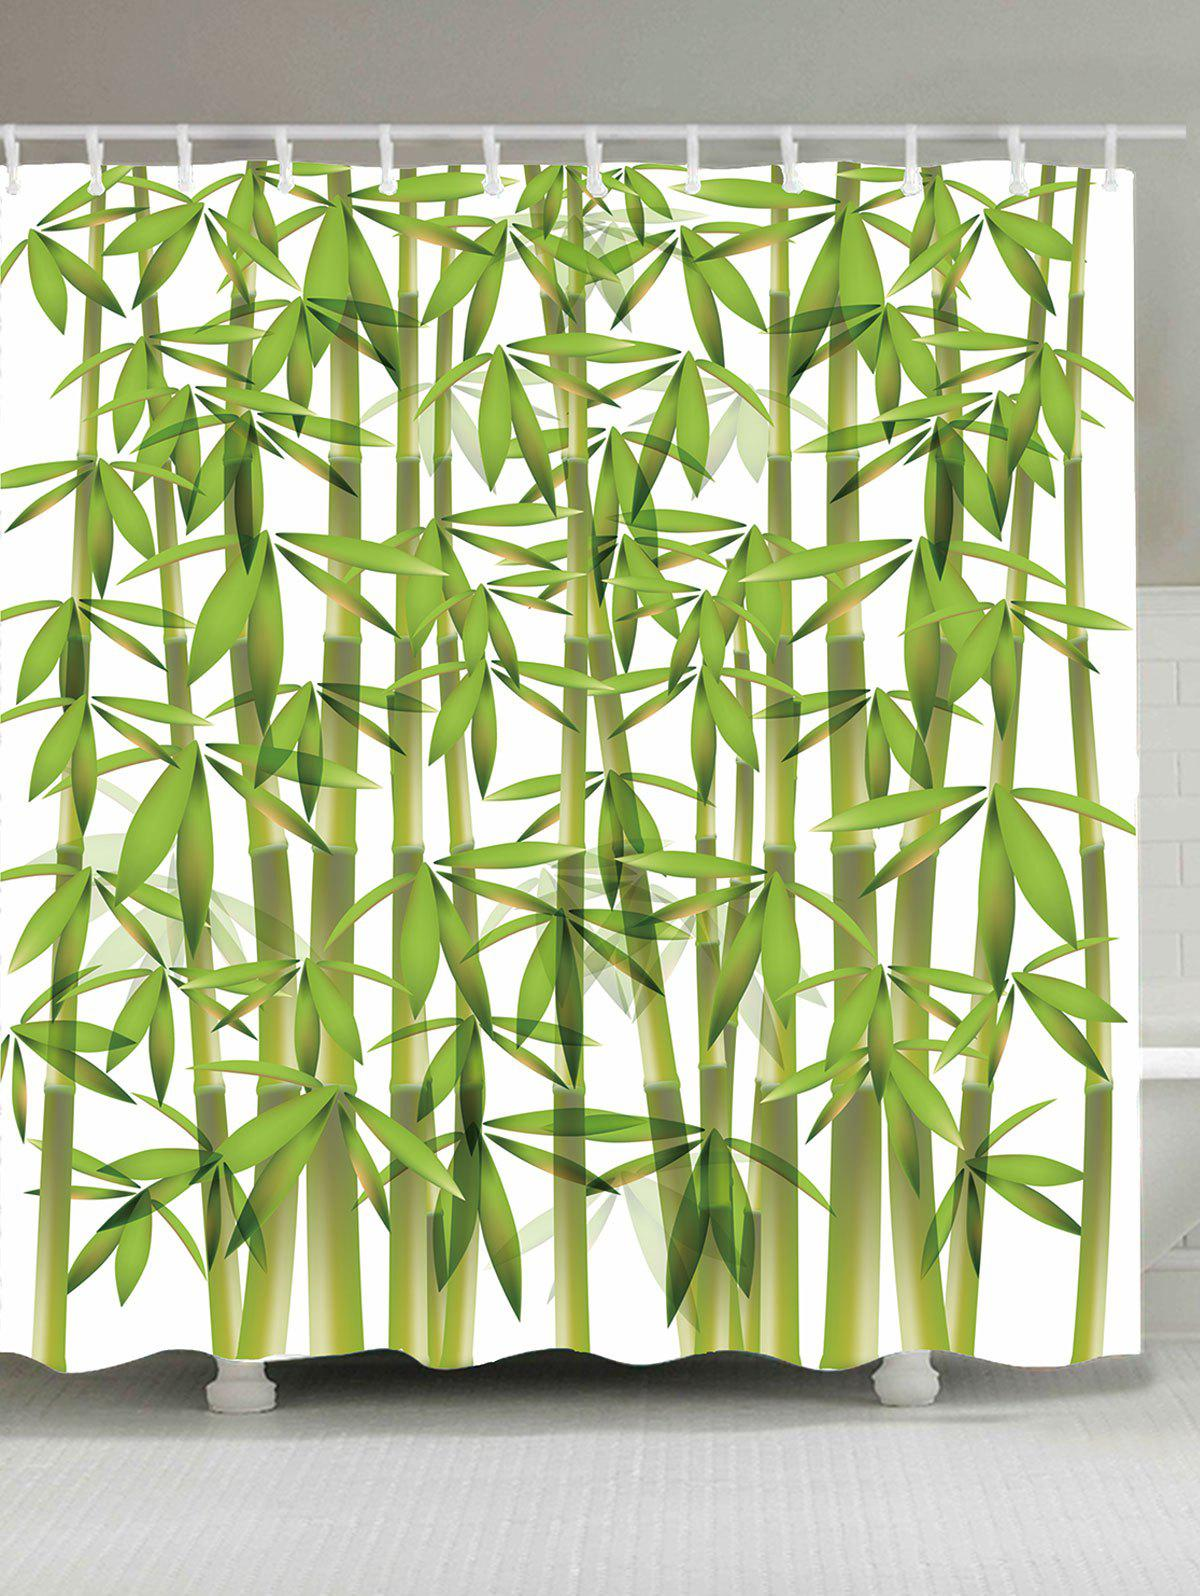 Bathroom Product Bamboo Print Waterproof Shower CurtainHOME<br><br>Size: W71 INCH * L71 INCH; Color: GREEN; Products Type: Shower Curtains; Materials: Polyester; Pattern: Print; Style: Fresh Style; Number of Hook Holes: 12; Package Contents: 1 x Shower Curtain 1 x Hooks (Set);